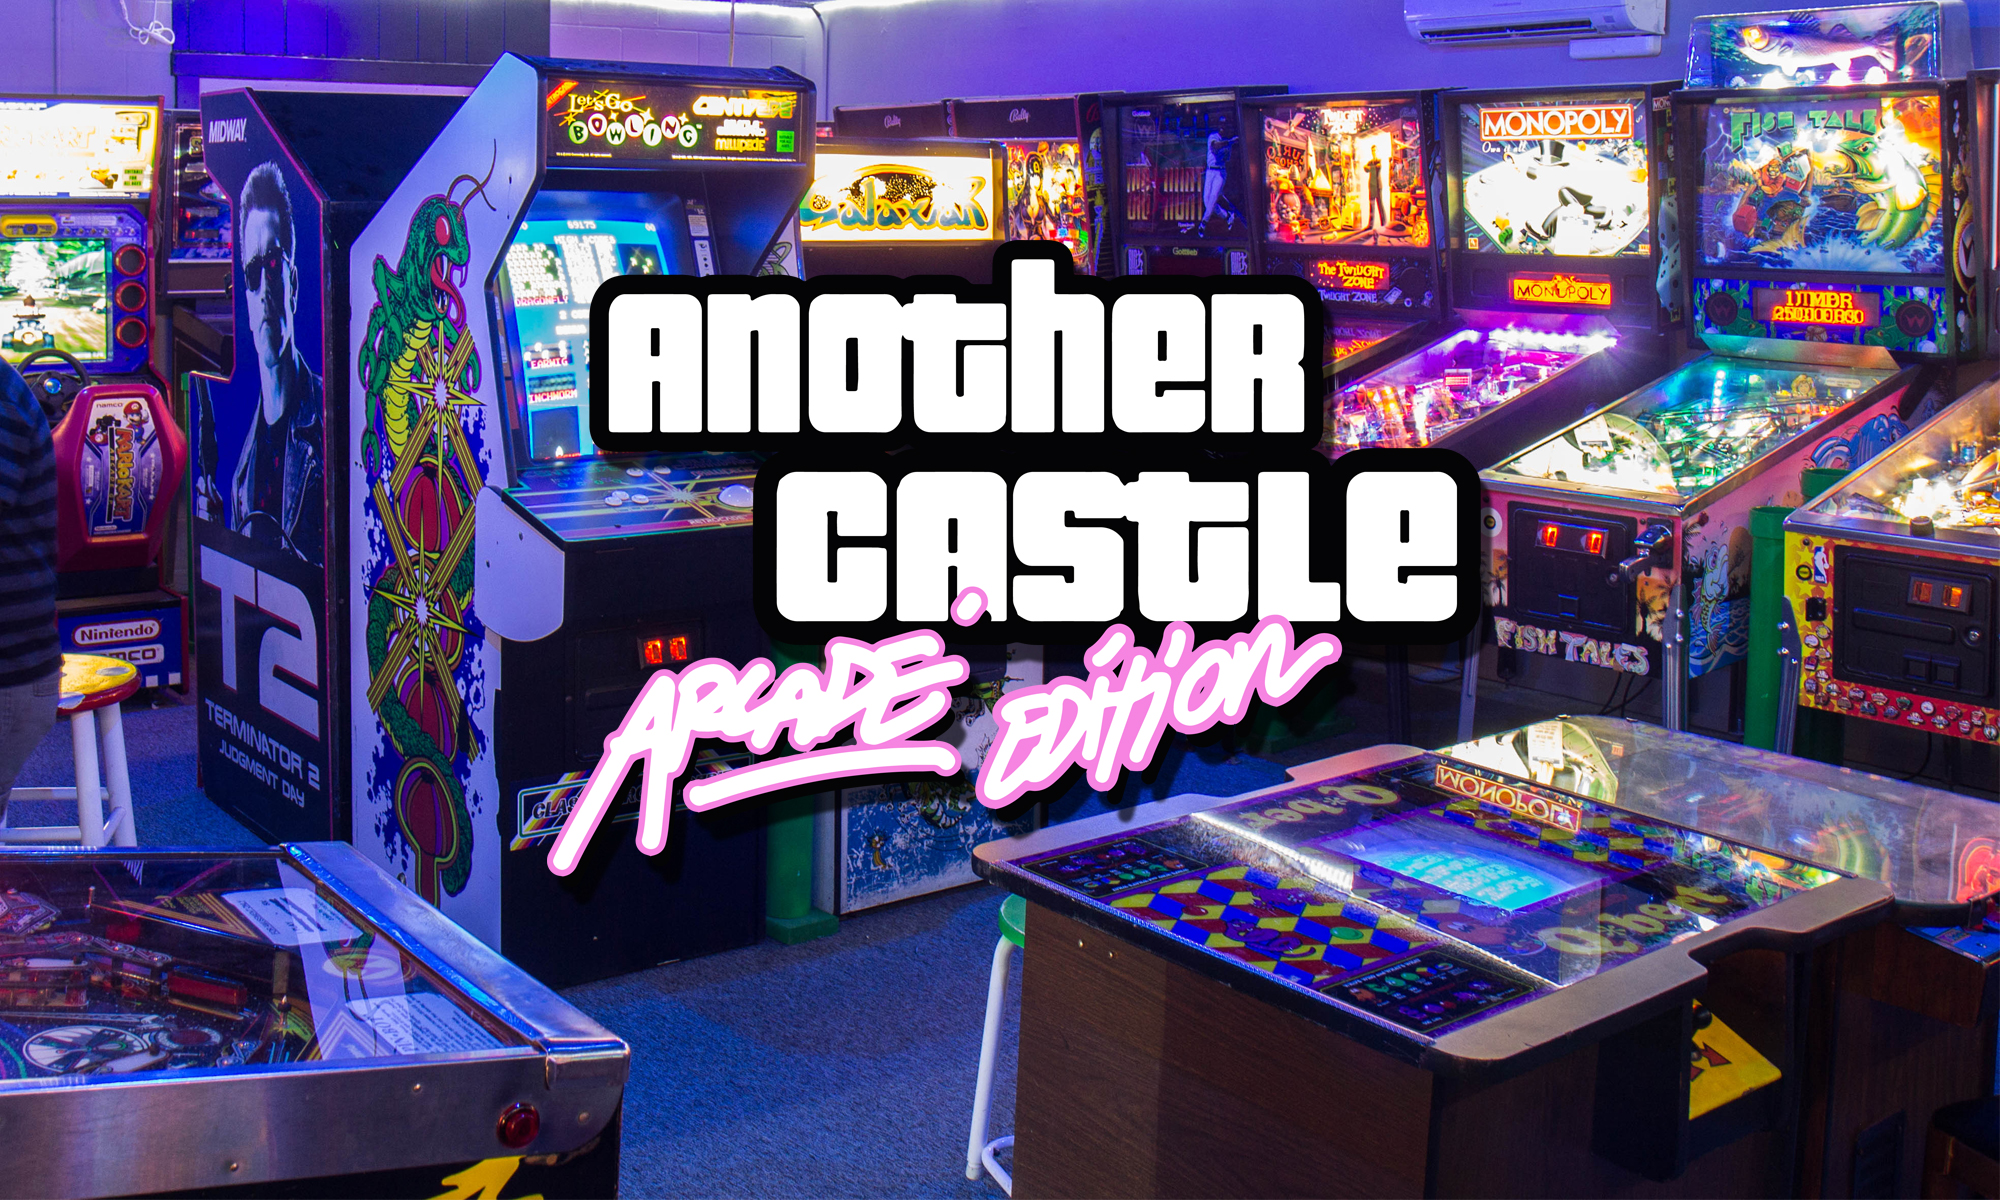 Another Castle Arcade Edition